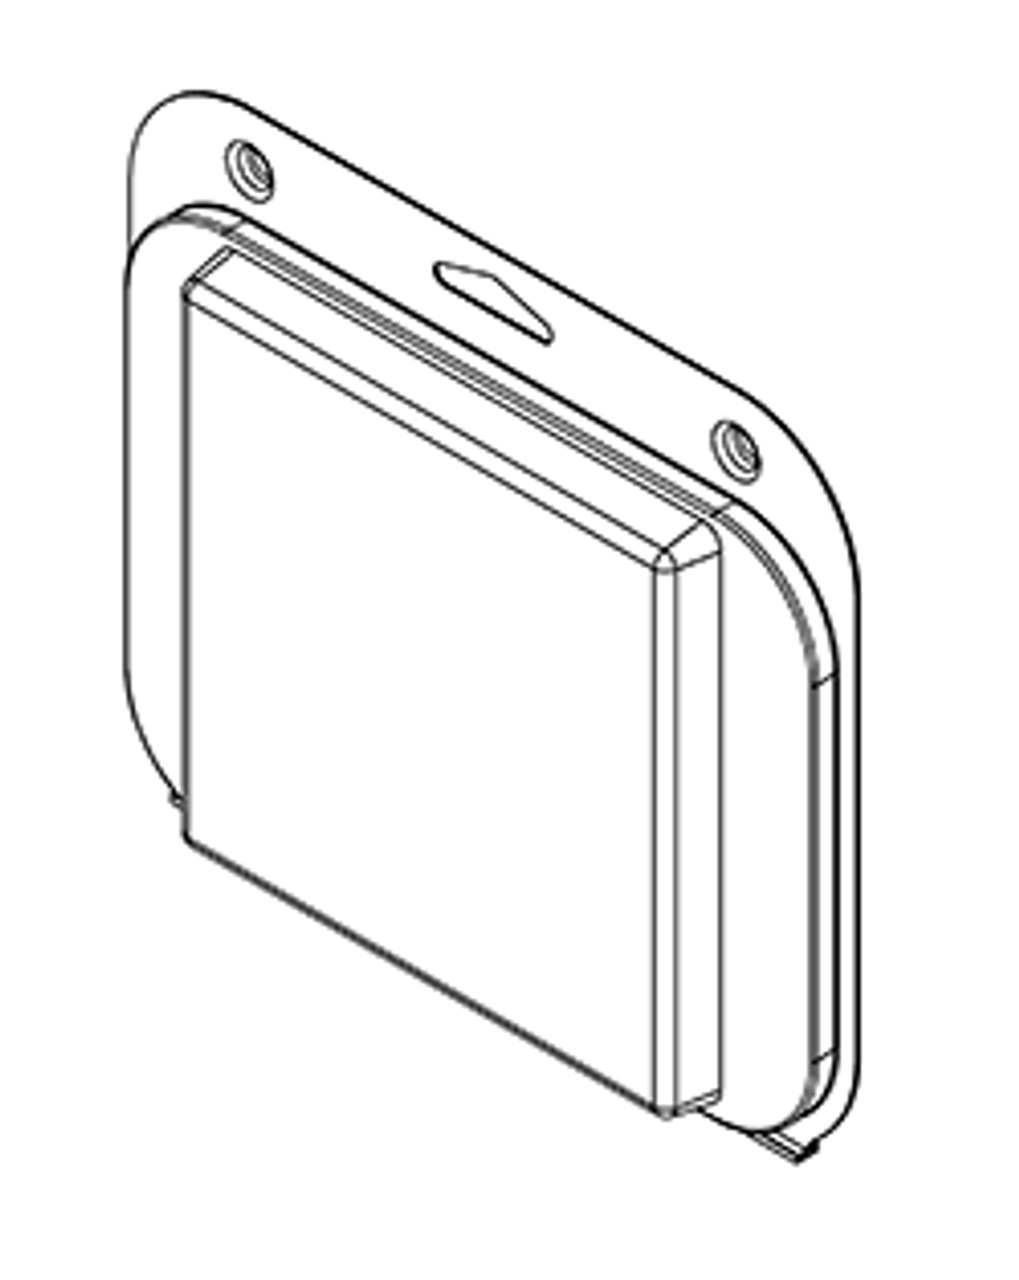 305TF - Stock Clamshell Packaging